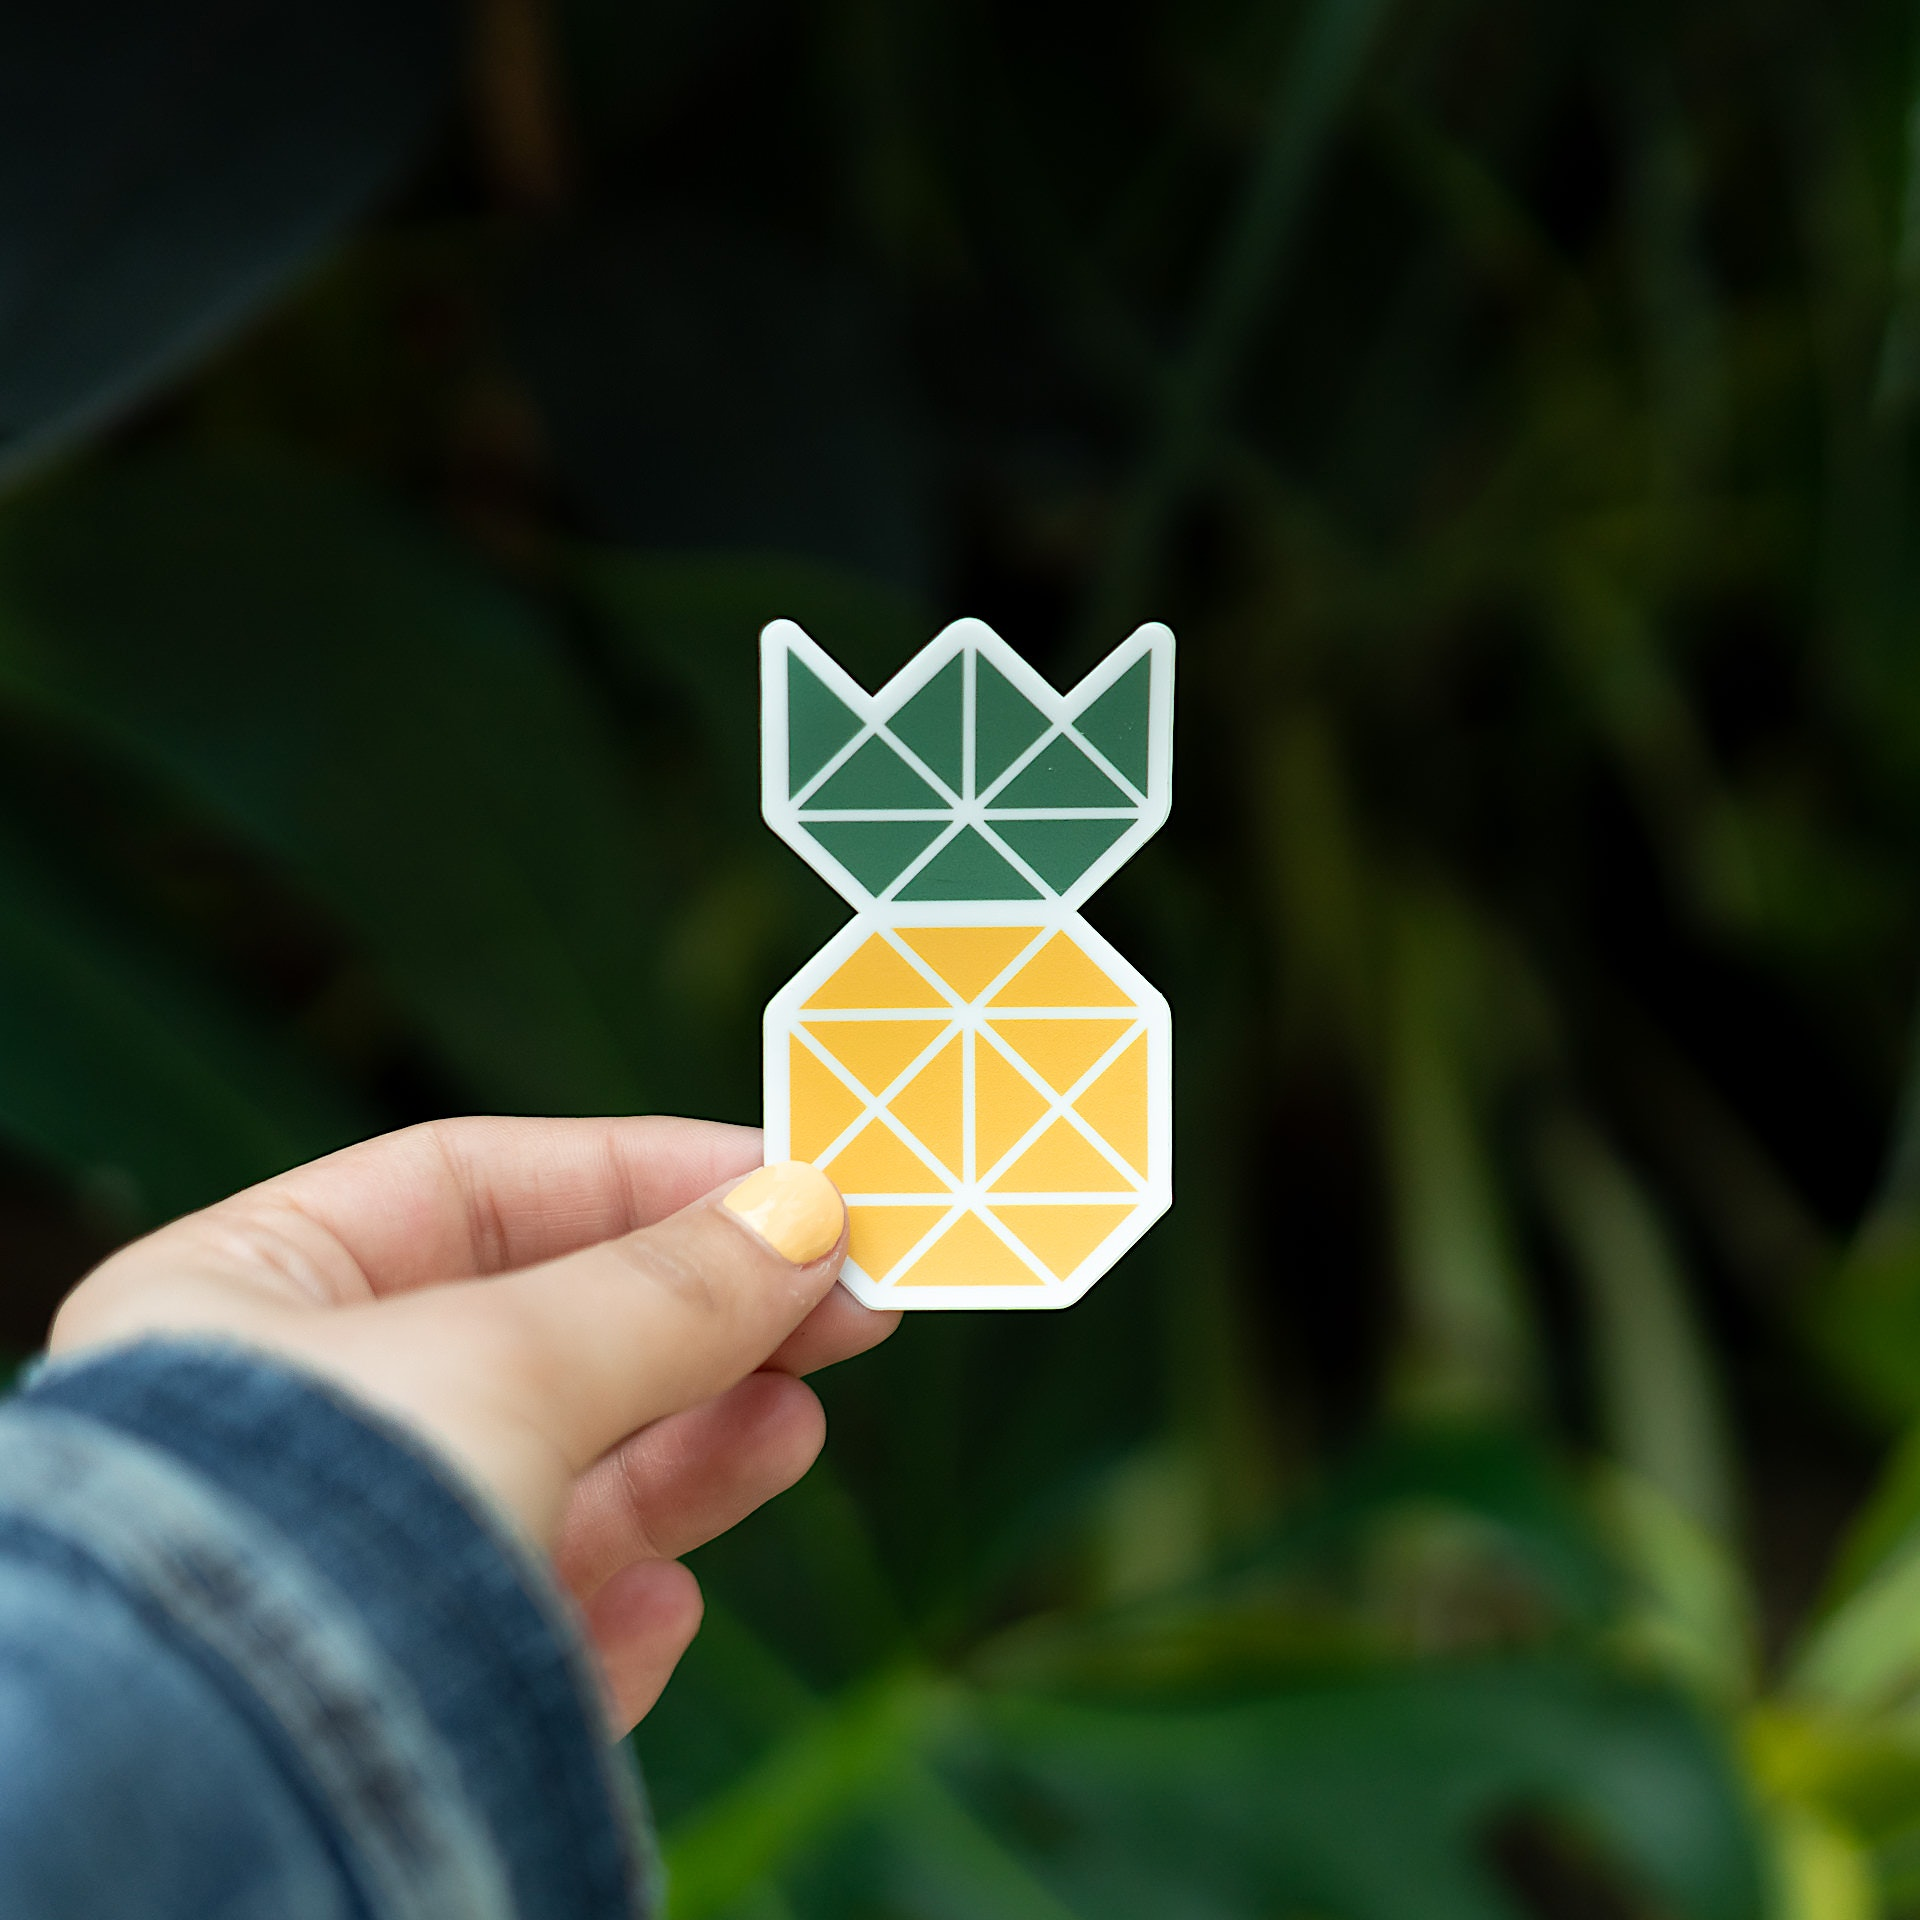 Where are people putting their pineapple stickers?